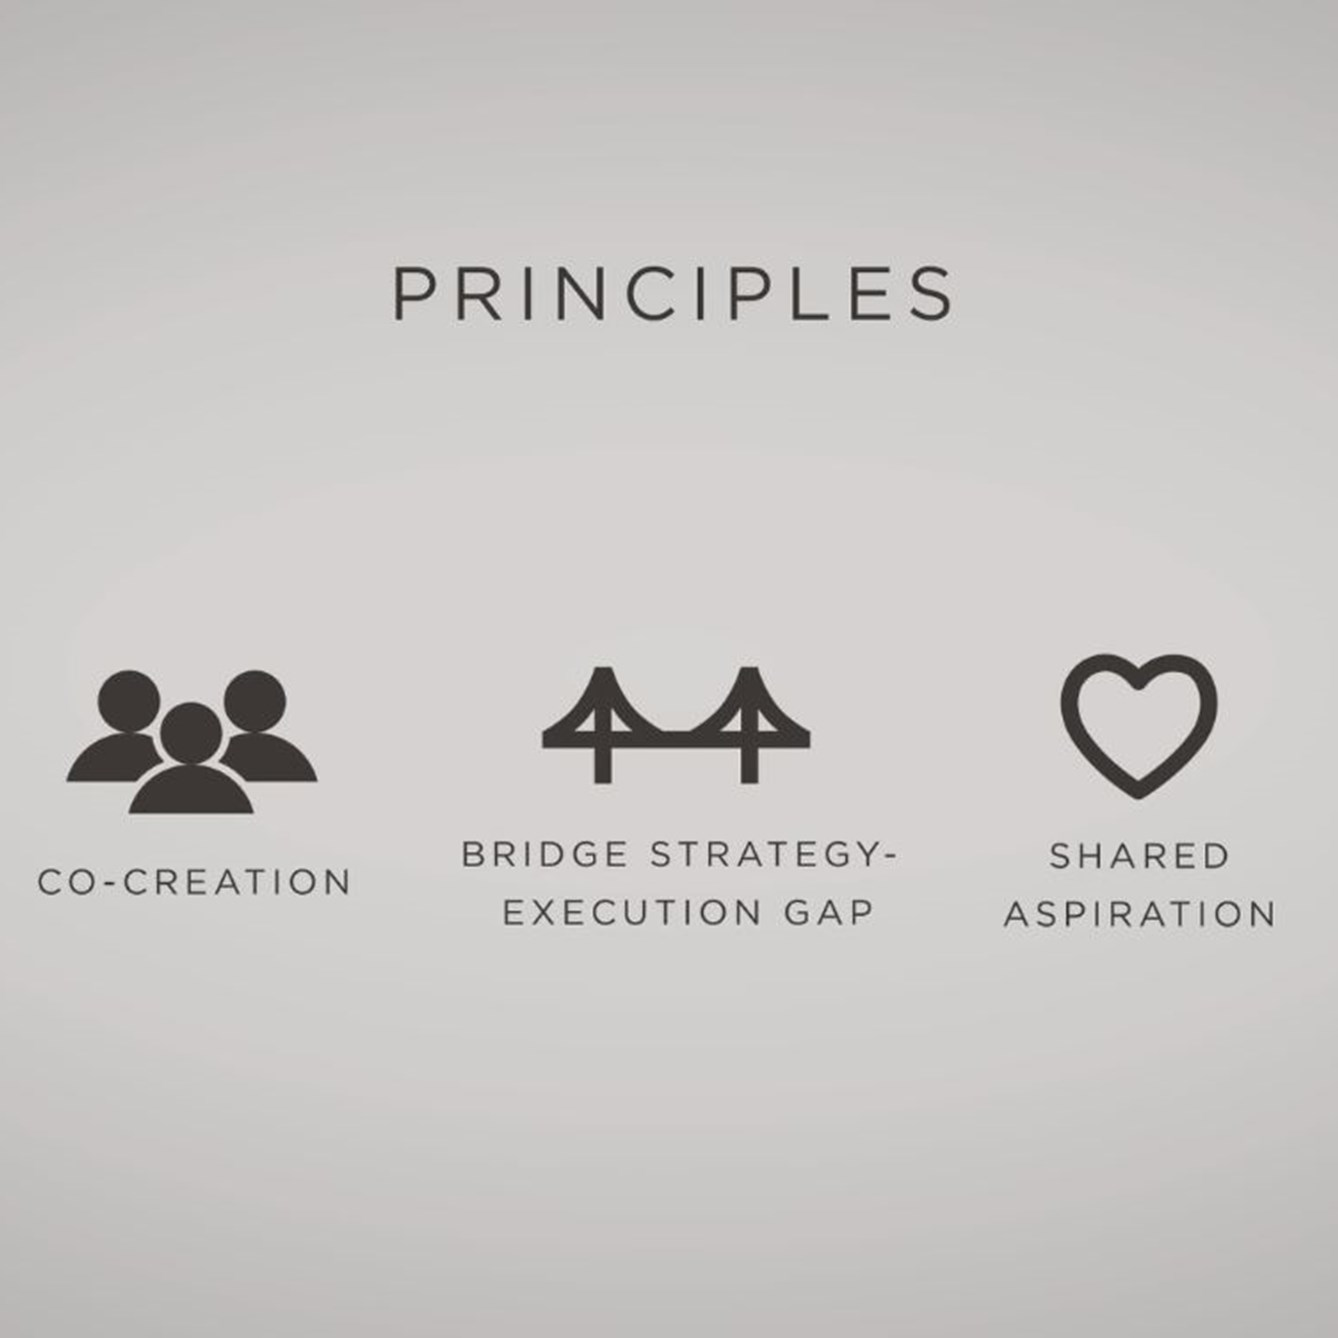 Fundamental principles for working collaboratively